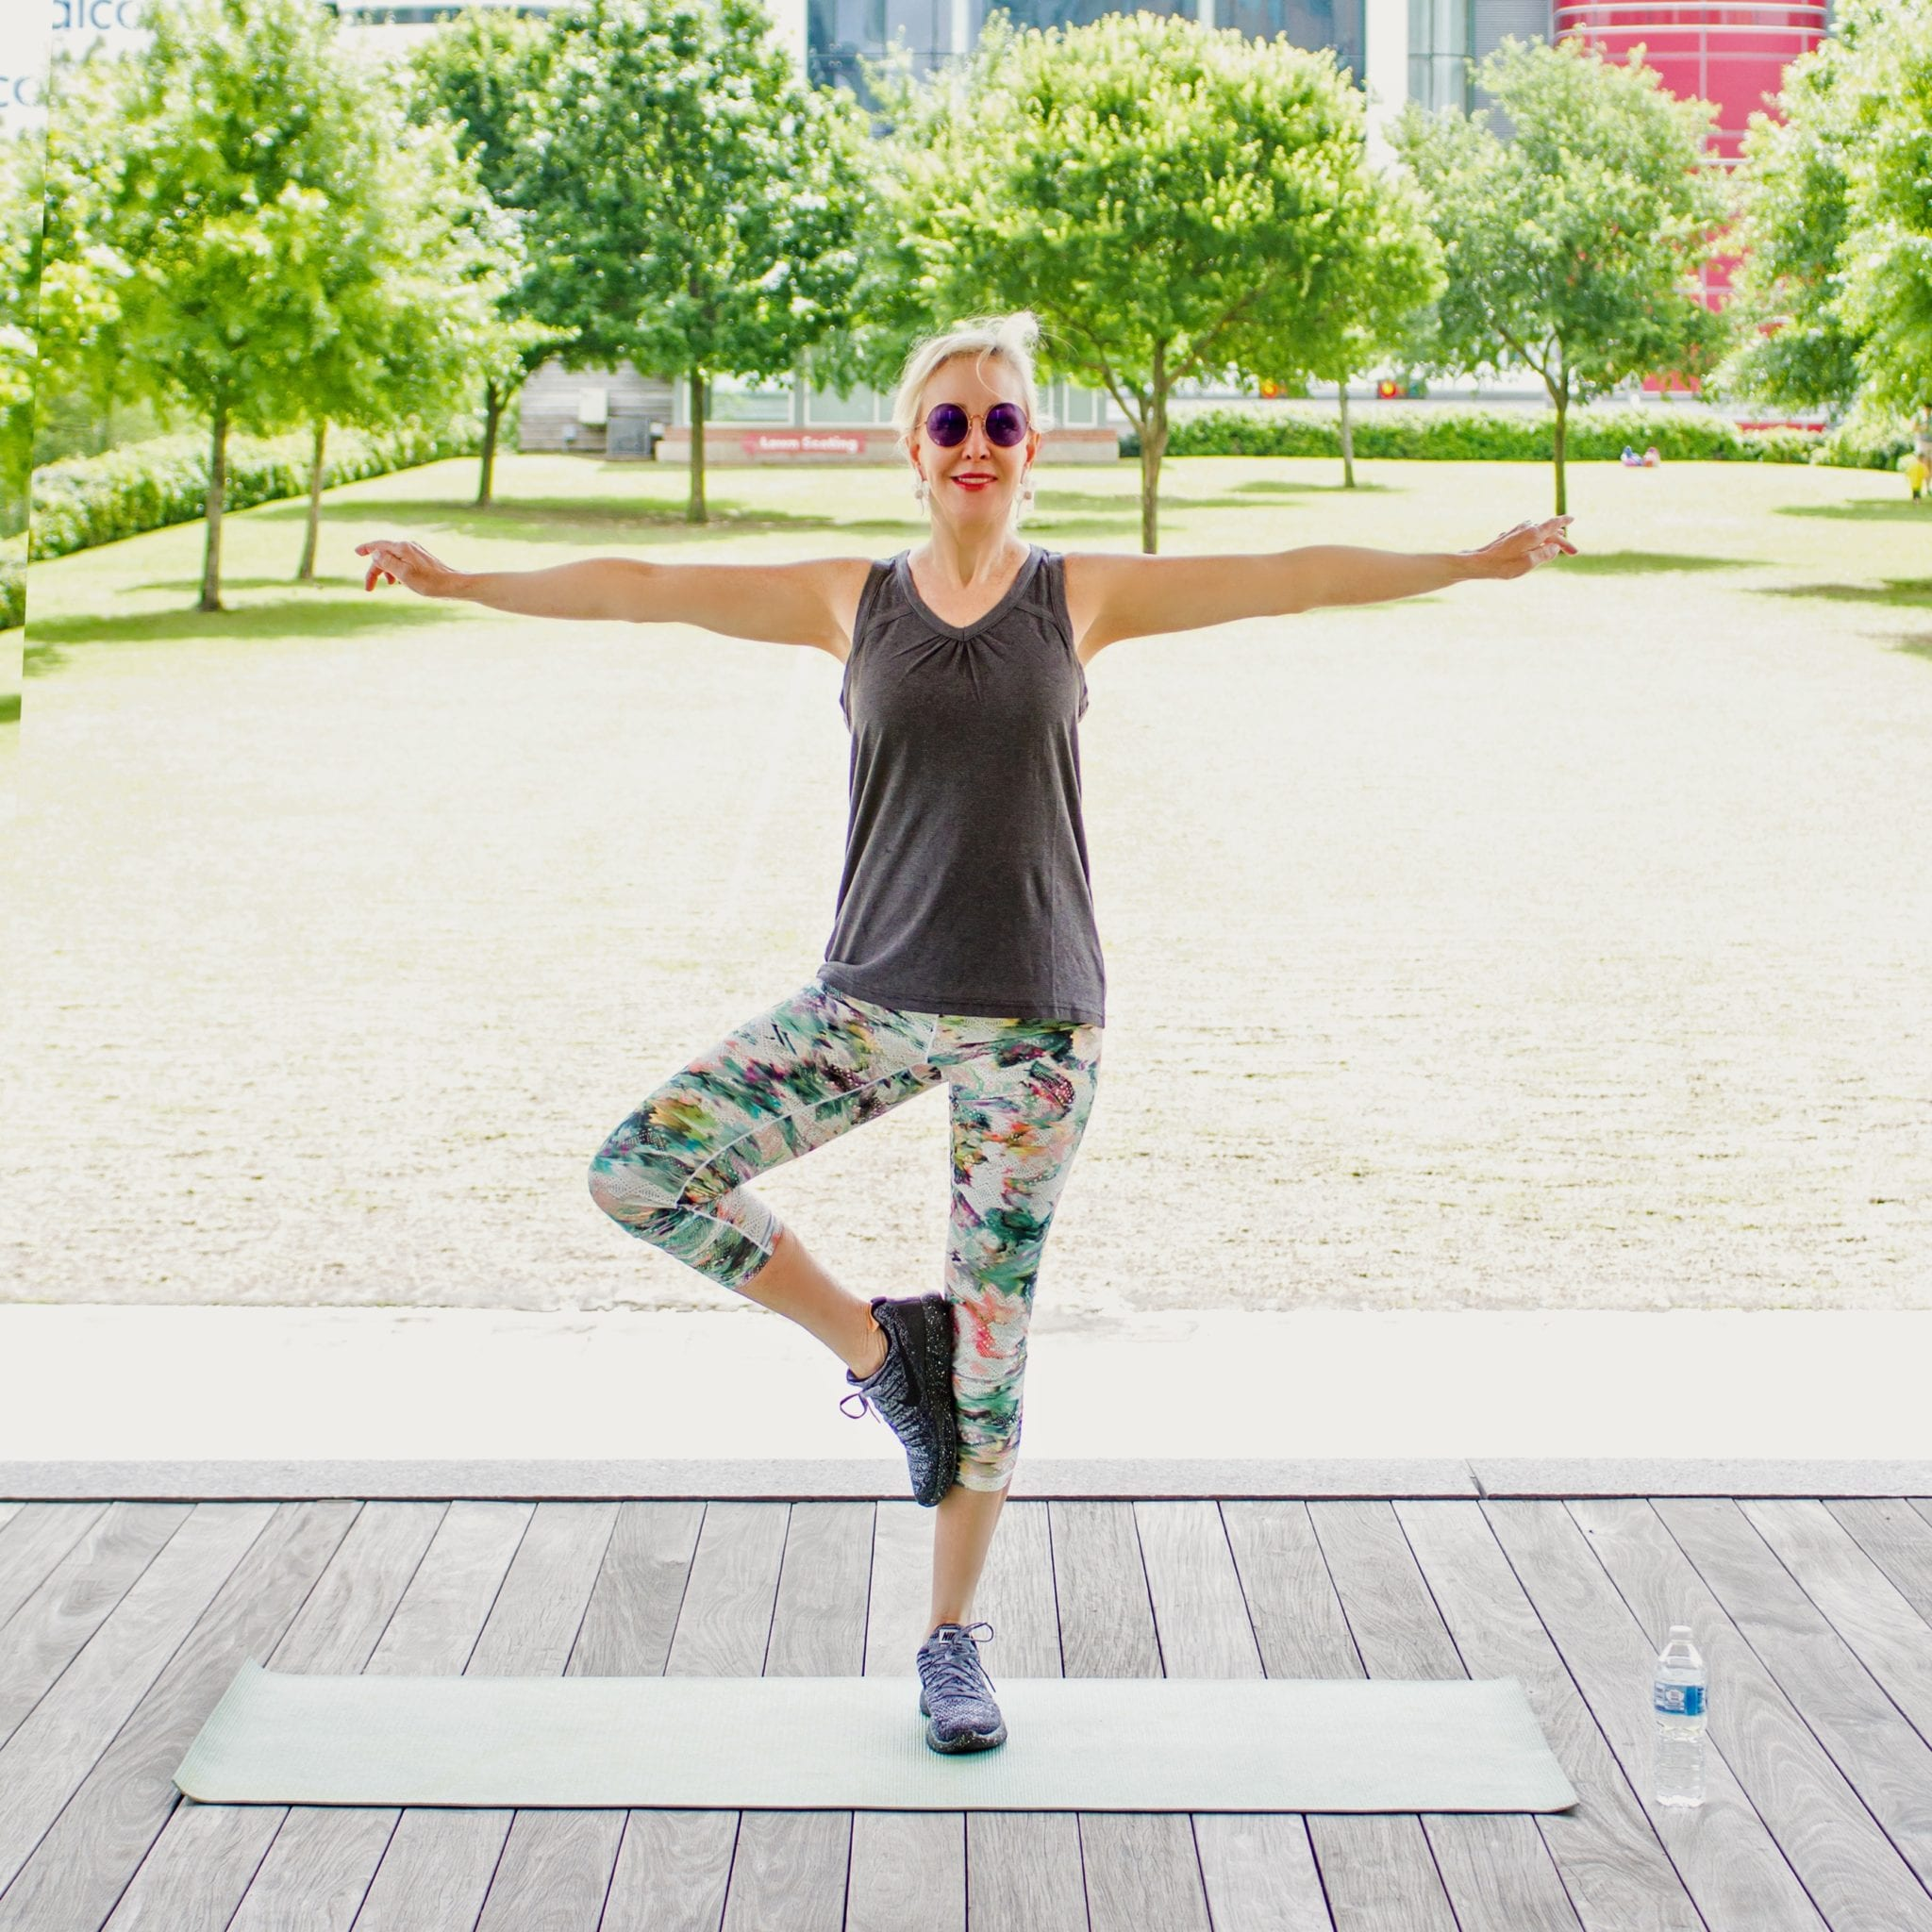 yoga, yoag wear, Prana, fitness, exercise, healthy life, being fit,